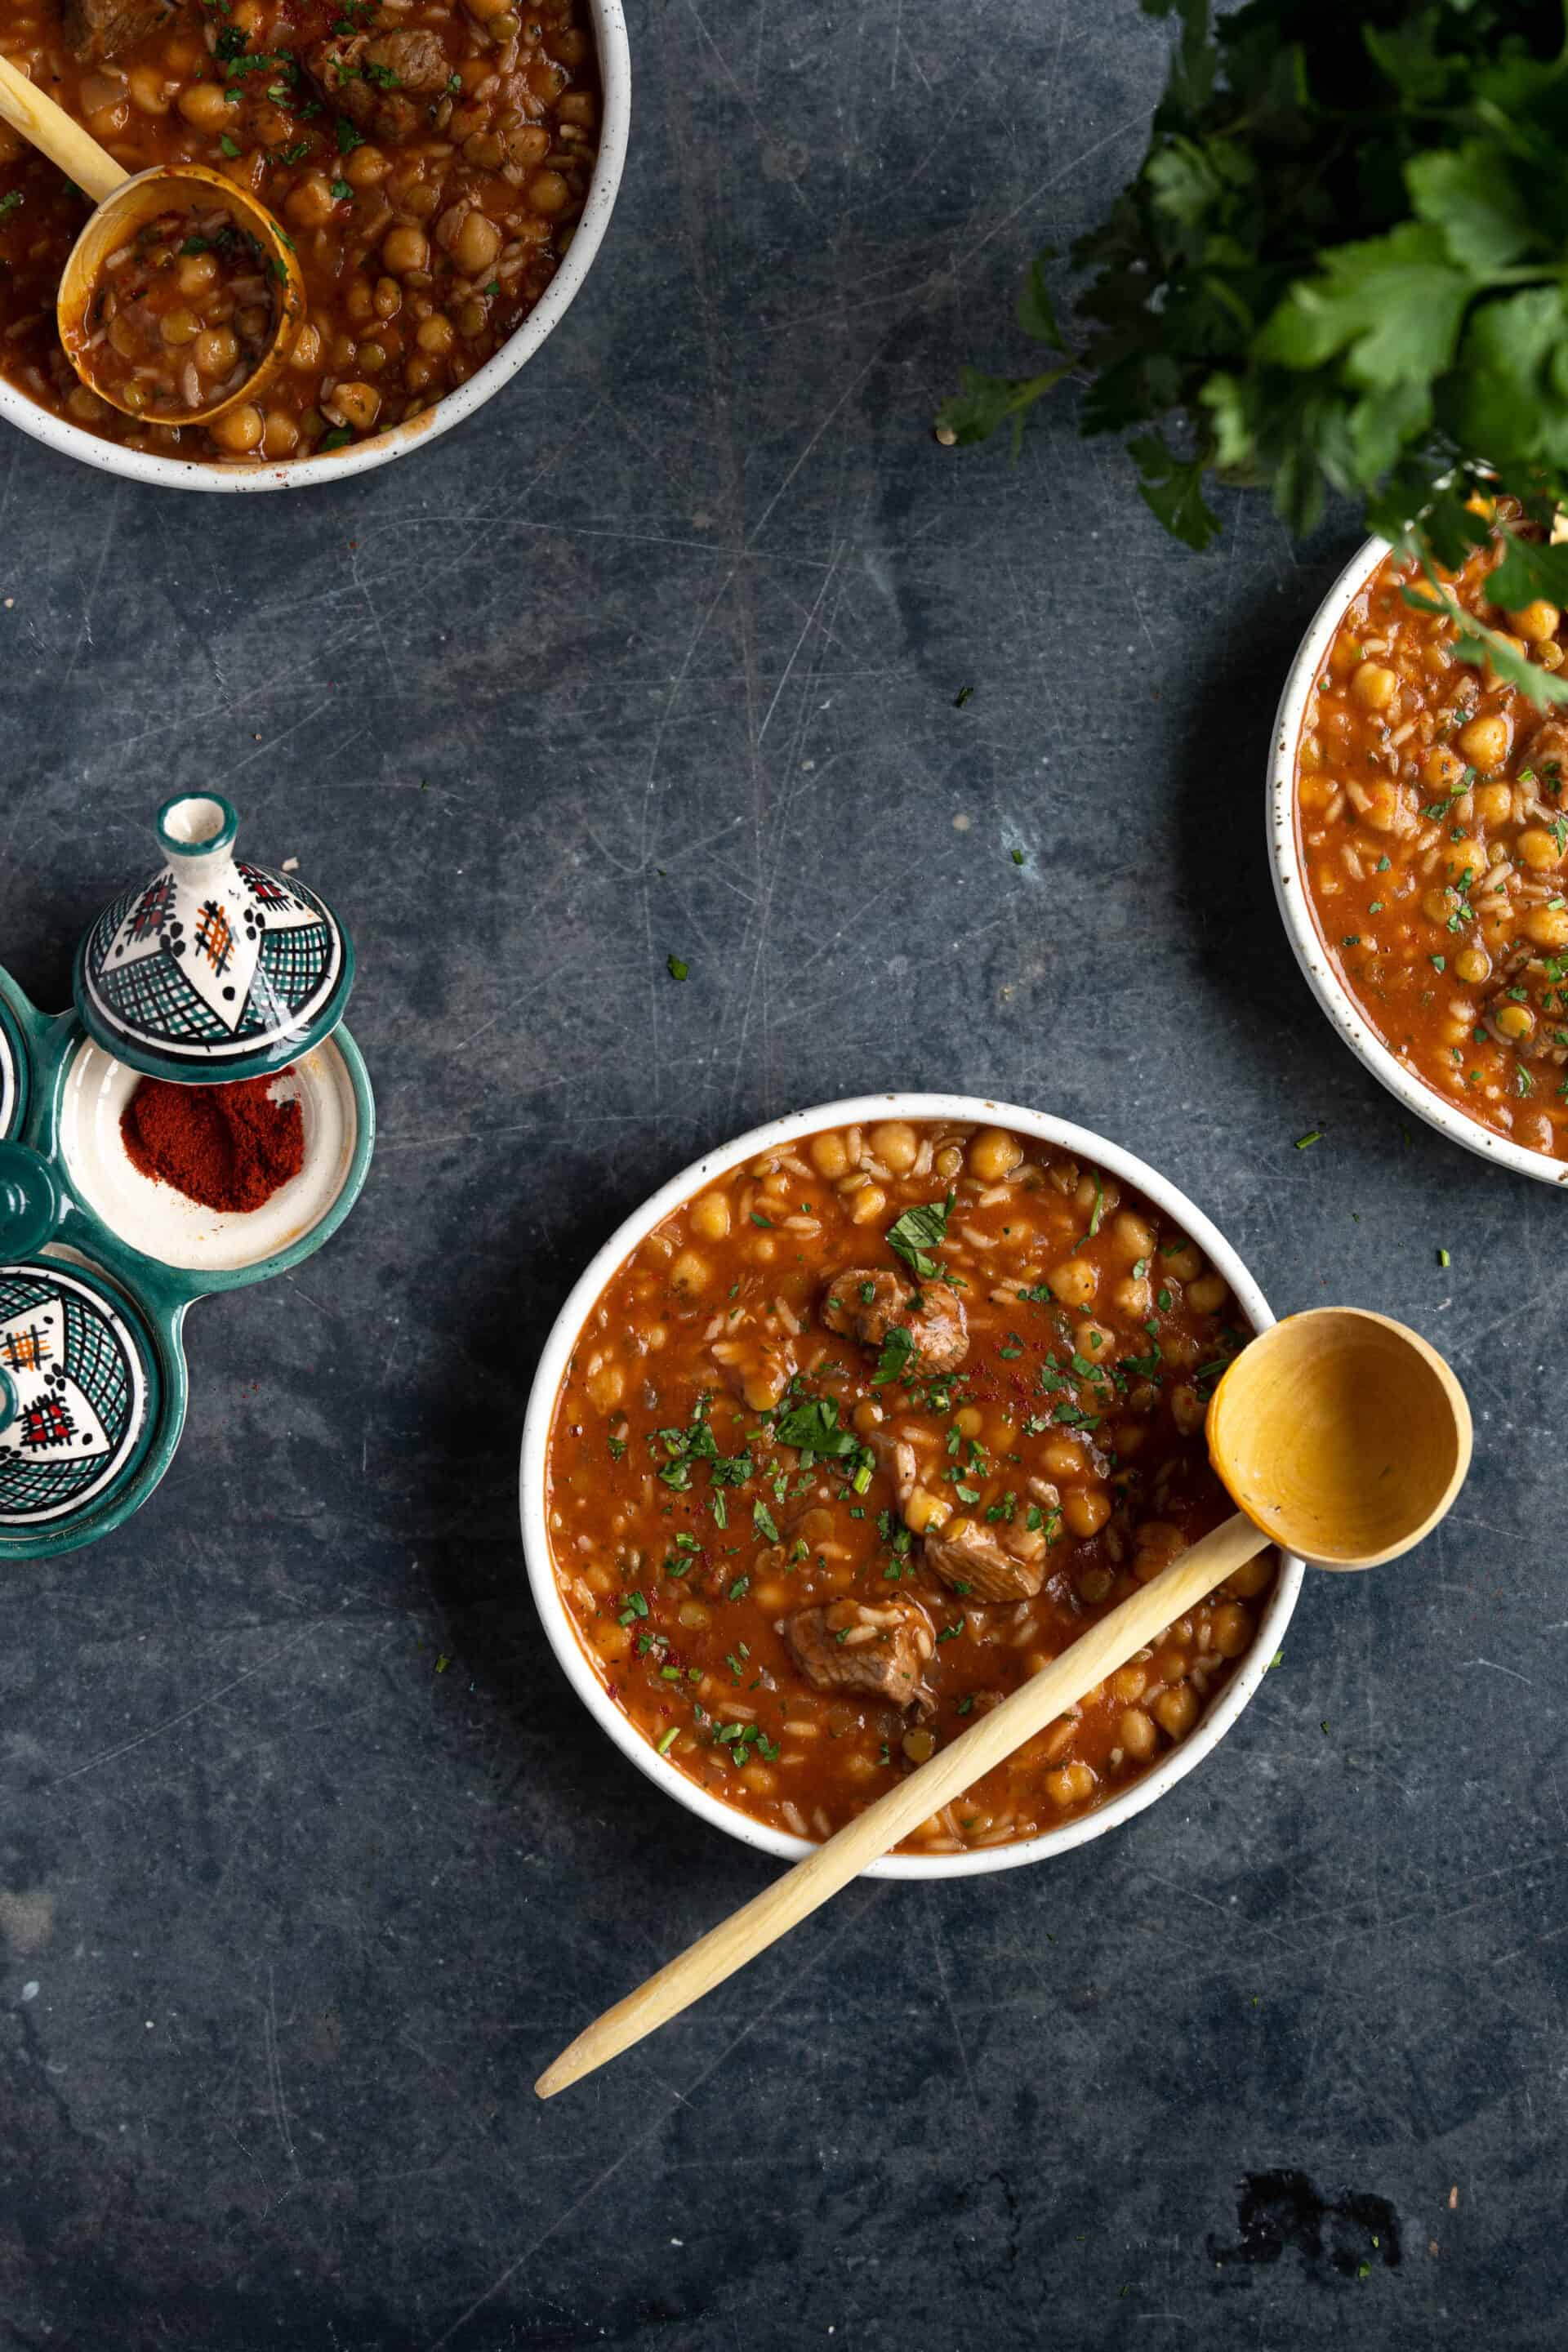 Three bowls of Moroccan soup on a black table